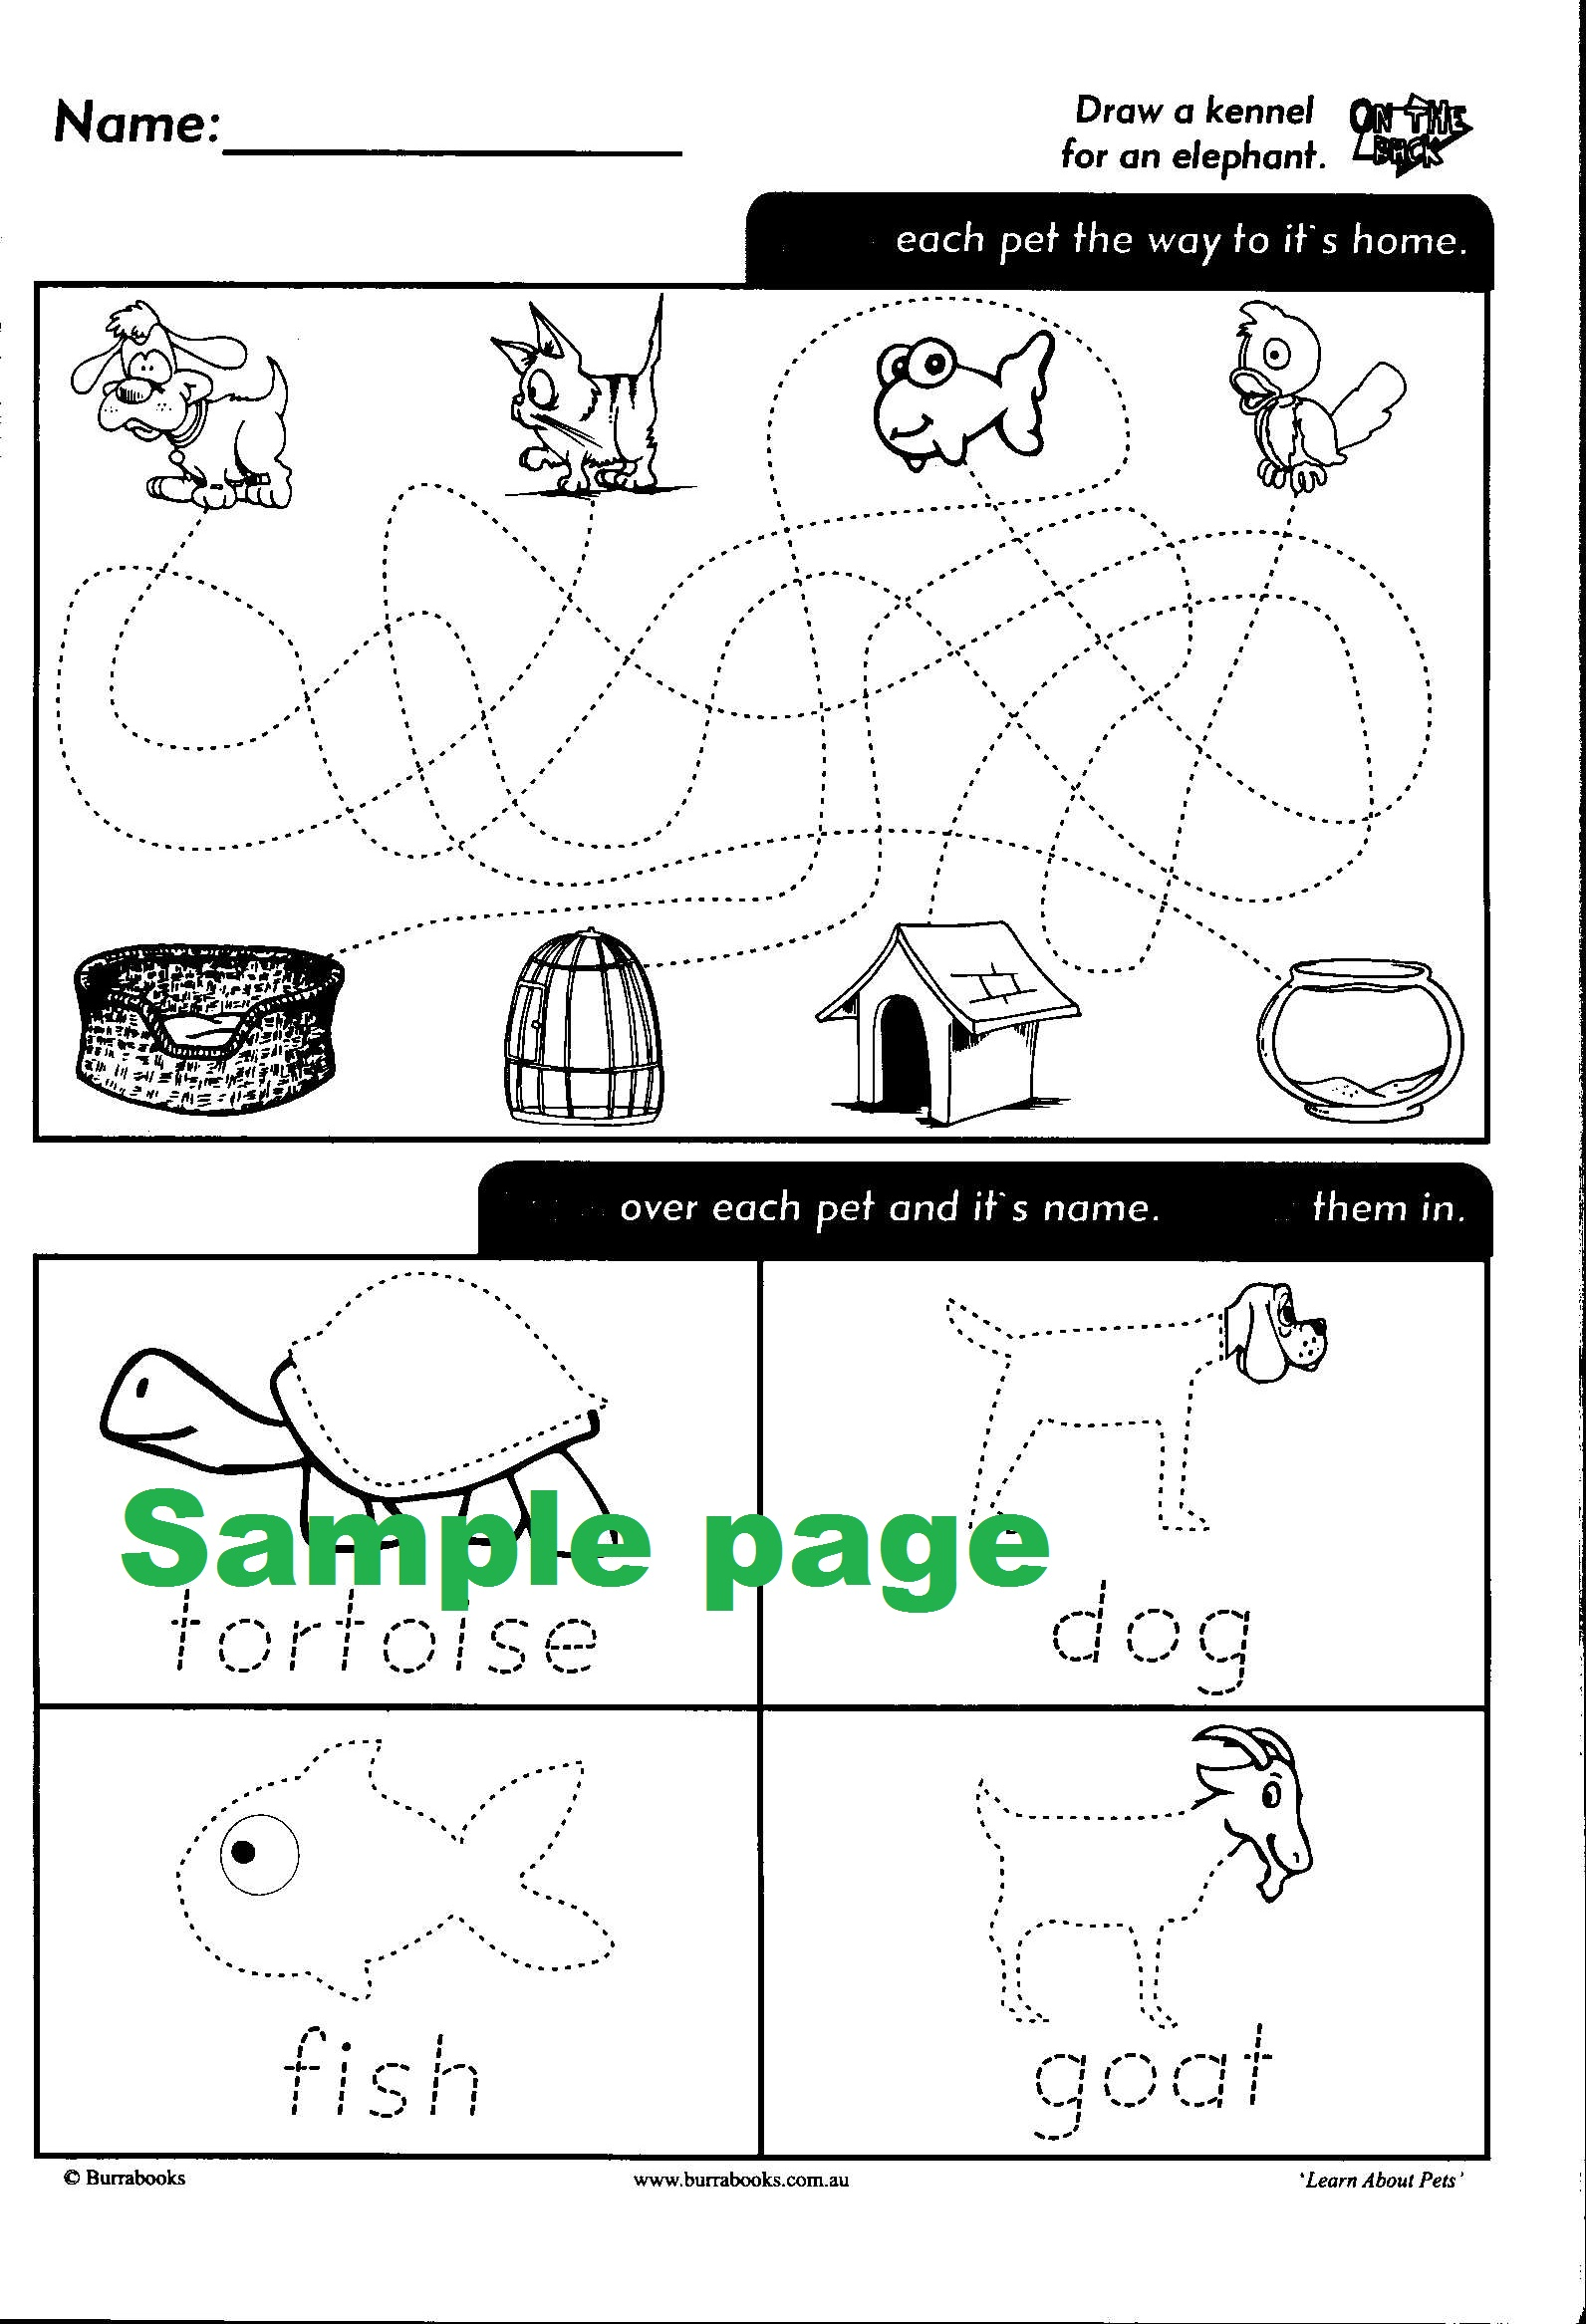 Learn About Pets-41909